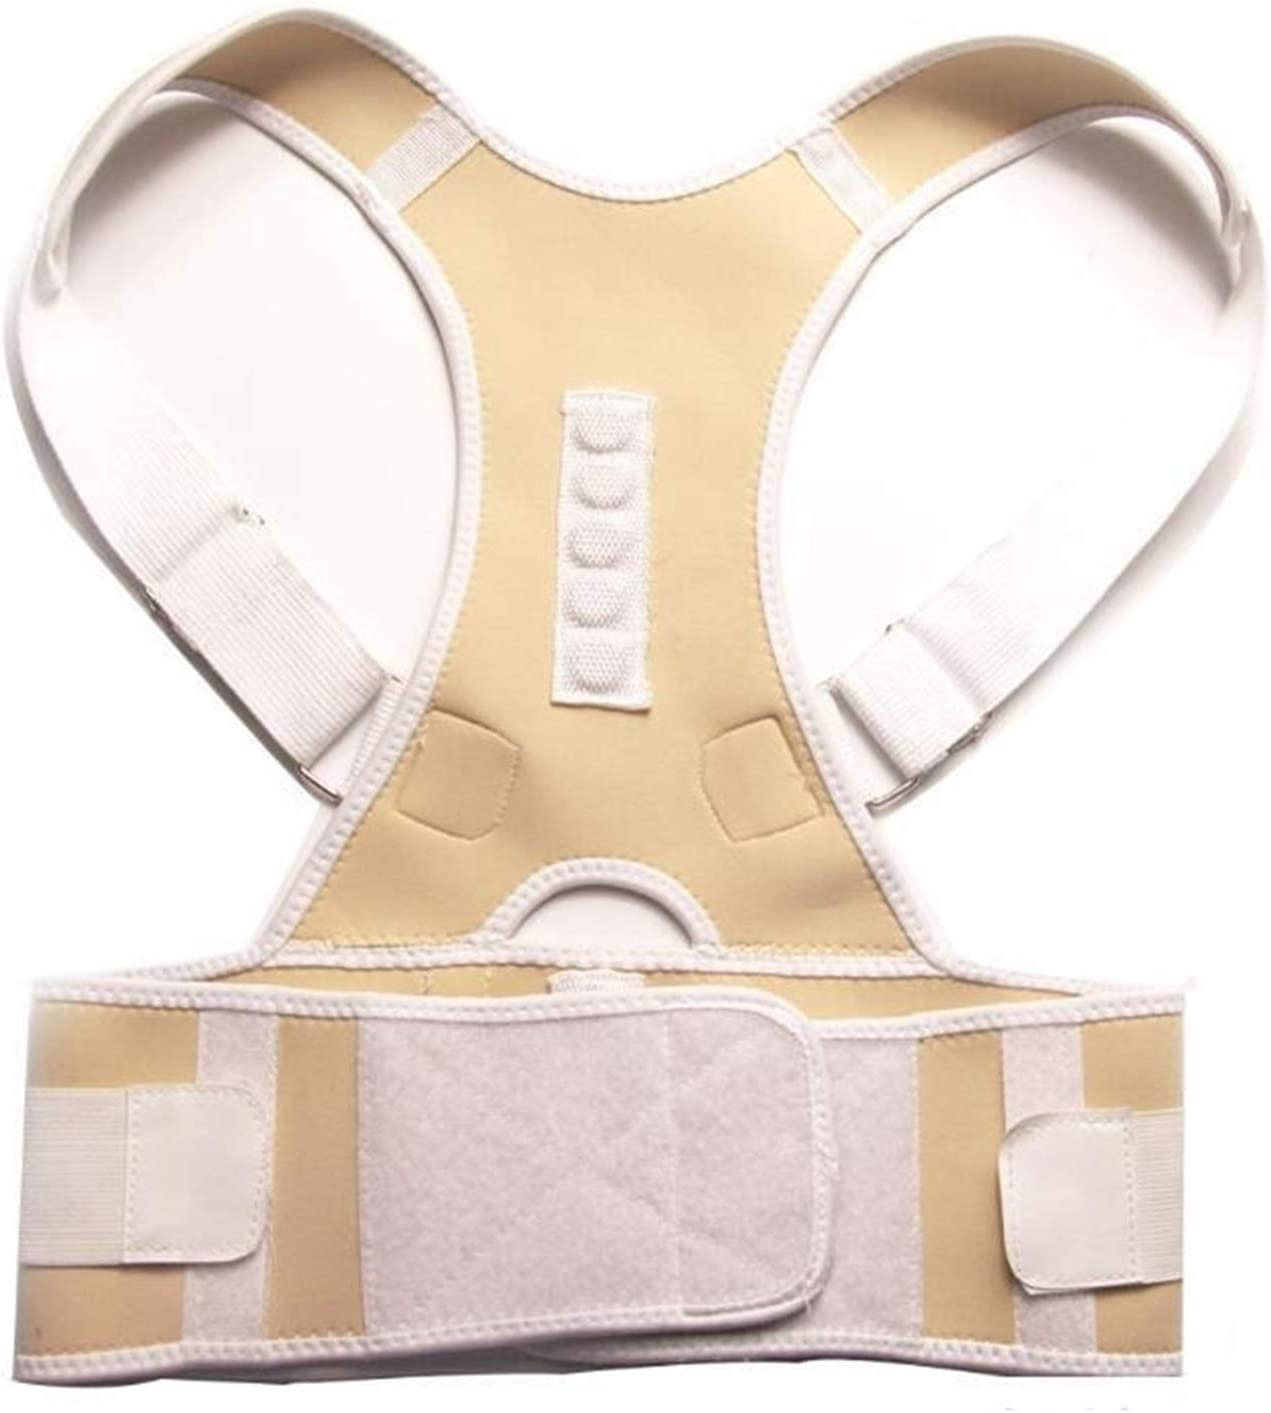 YCRCTC Magnetic Therapy Posture Corrector Free shipping anywhere in the nation Brace Back Max 69% OFF Su Shoulder